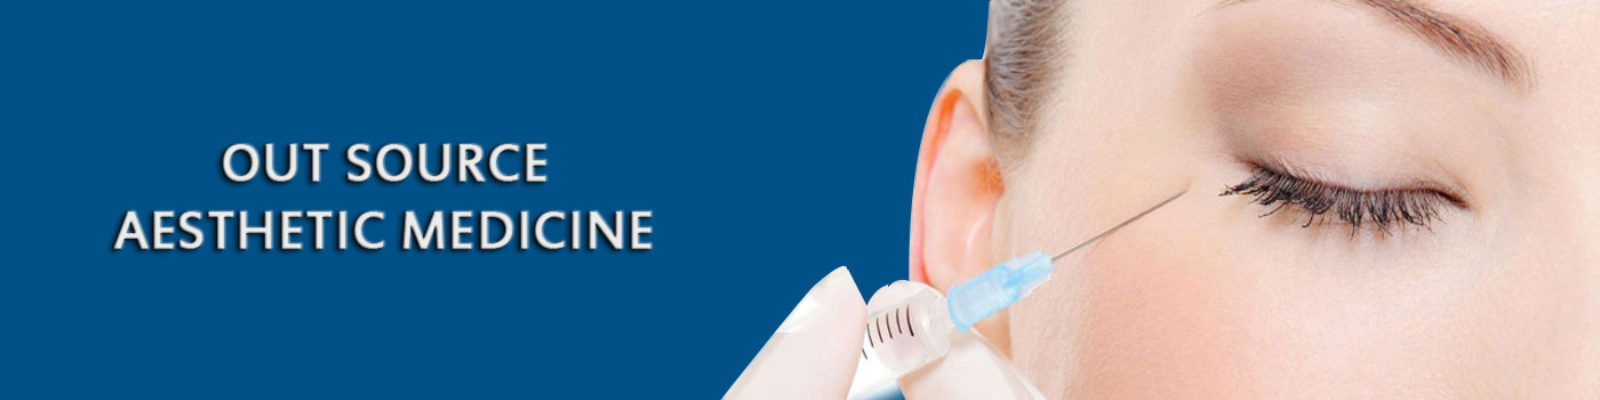 Out-Source-Aesthetic-Medicine-Procedures-1600x400